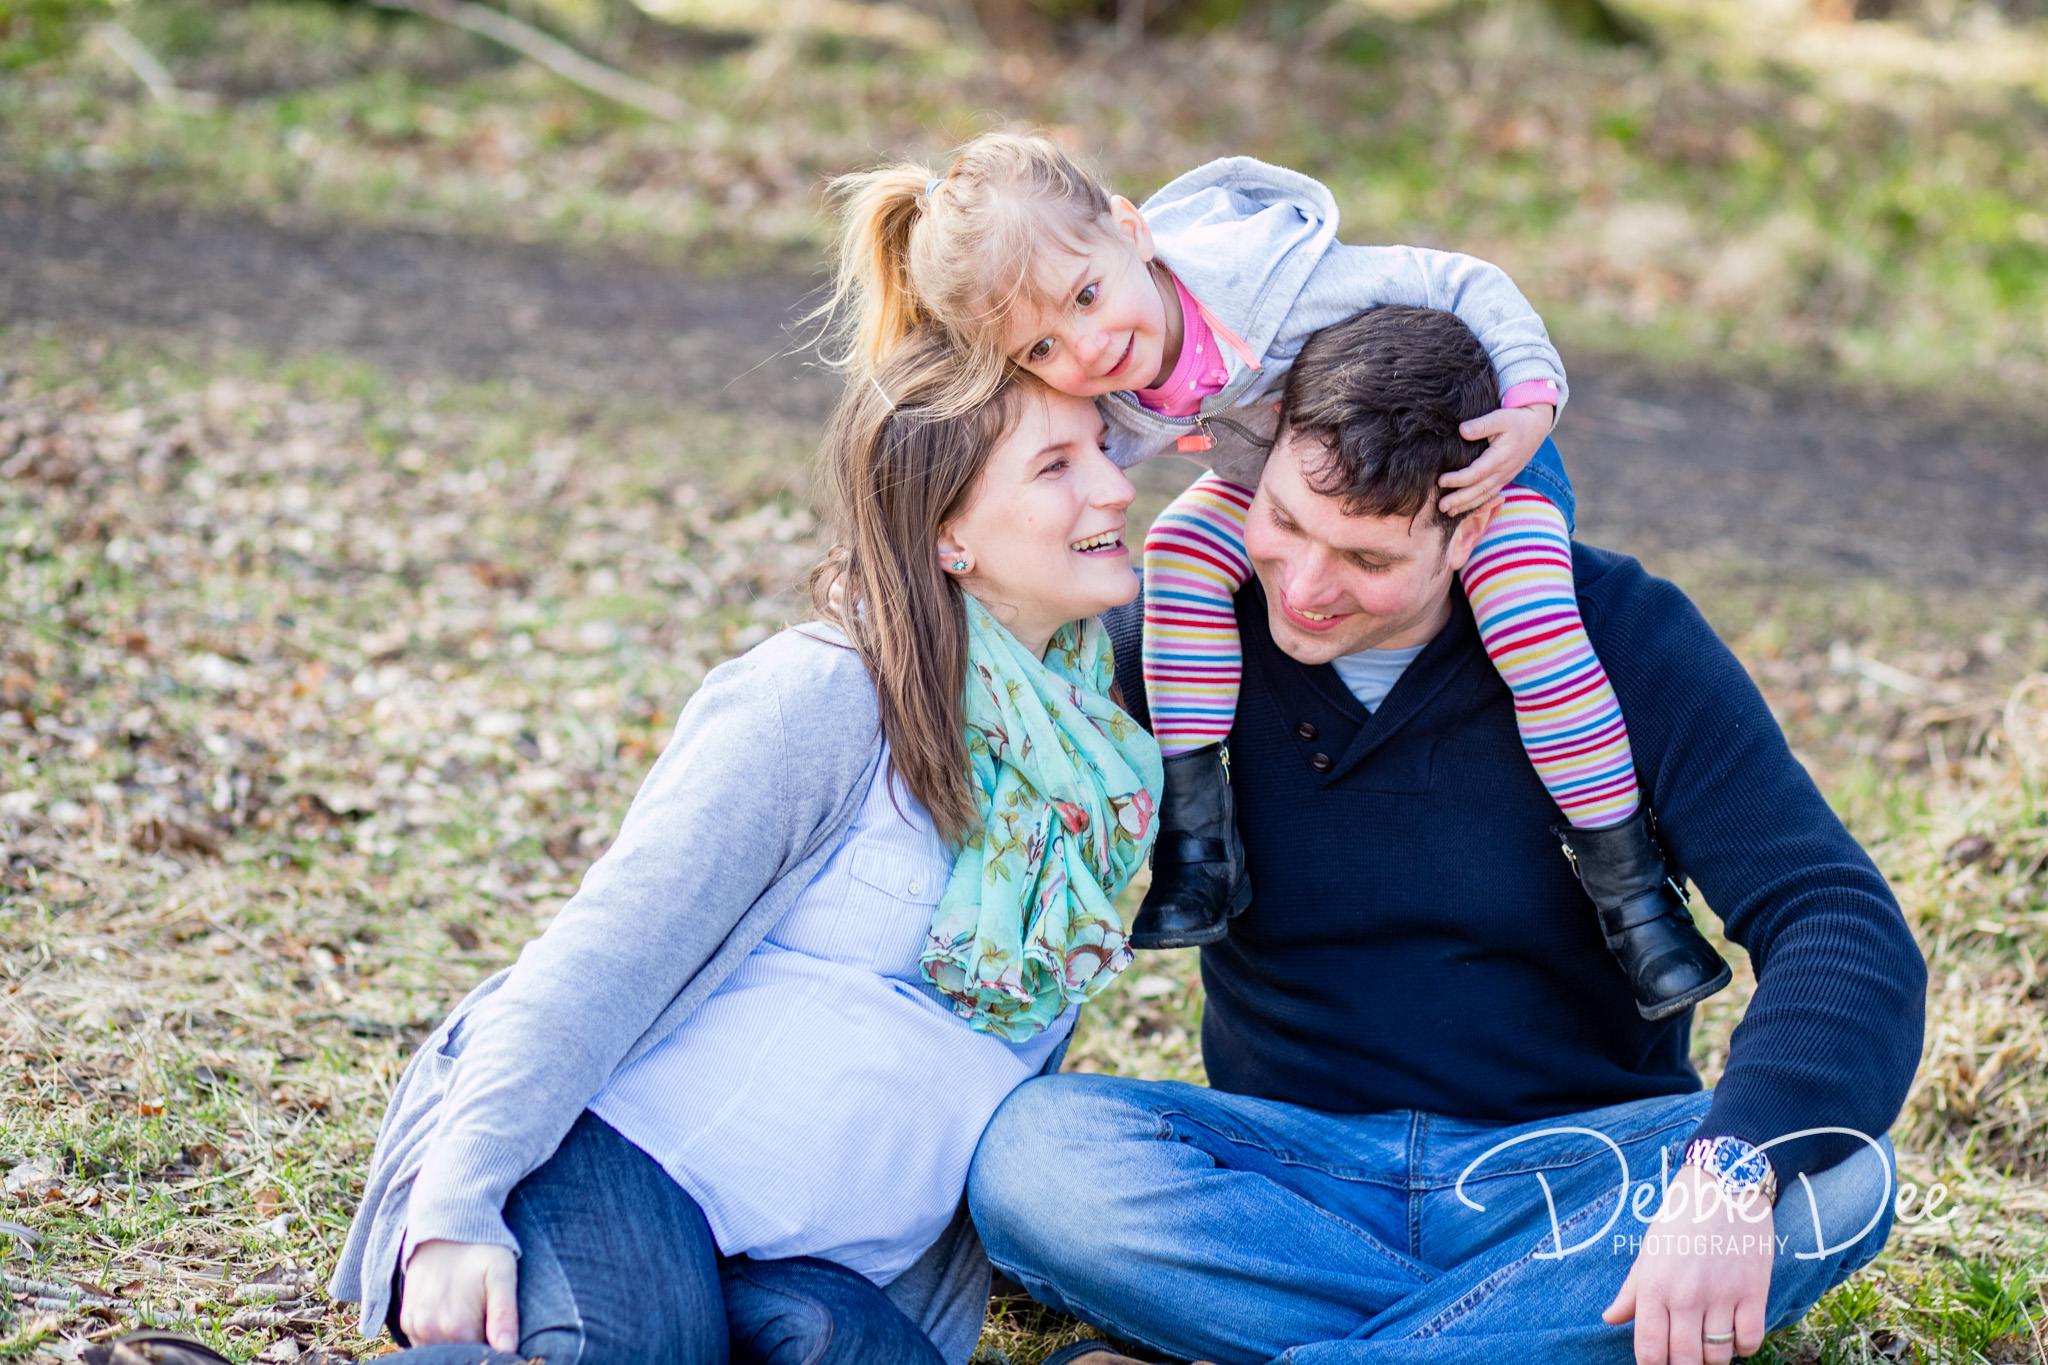 Aberdeenshire Family Maternity Photography Session Mum Dad and little girl cuddling together on the ground